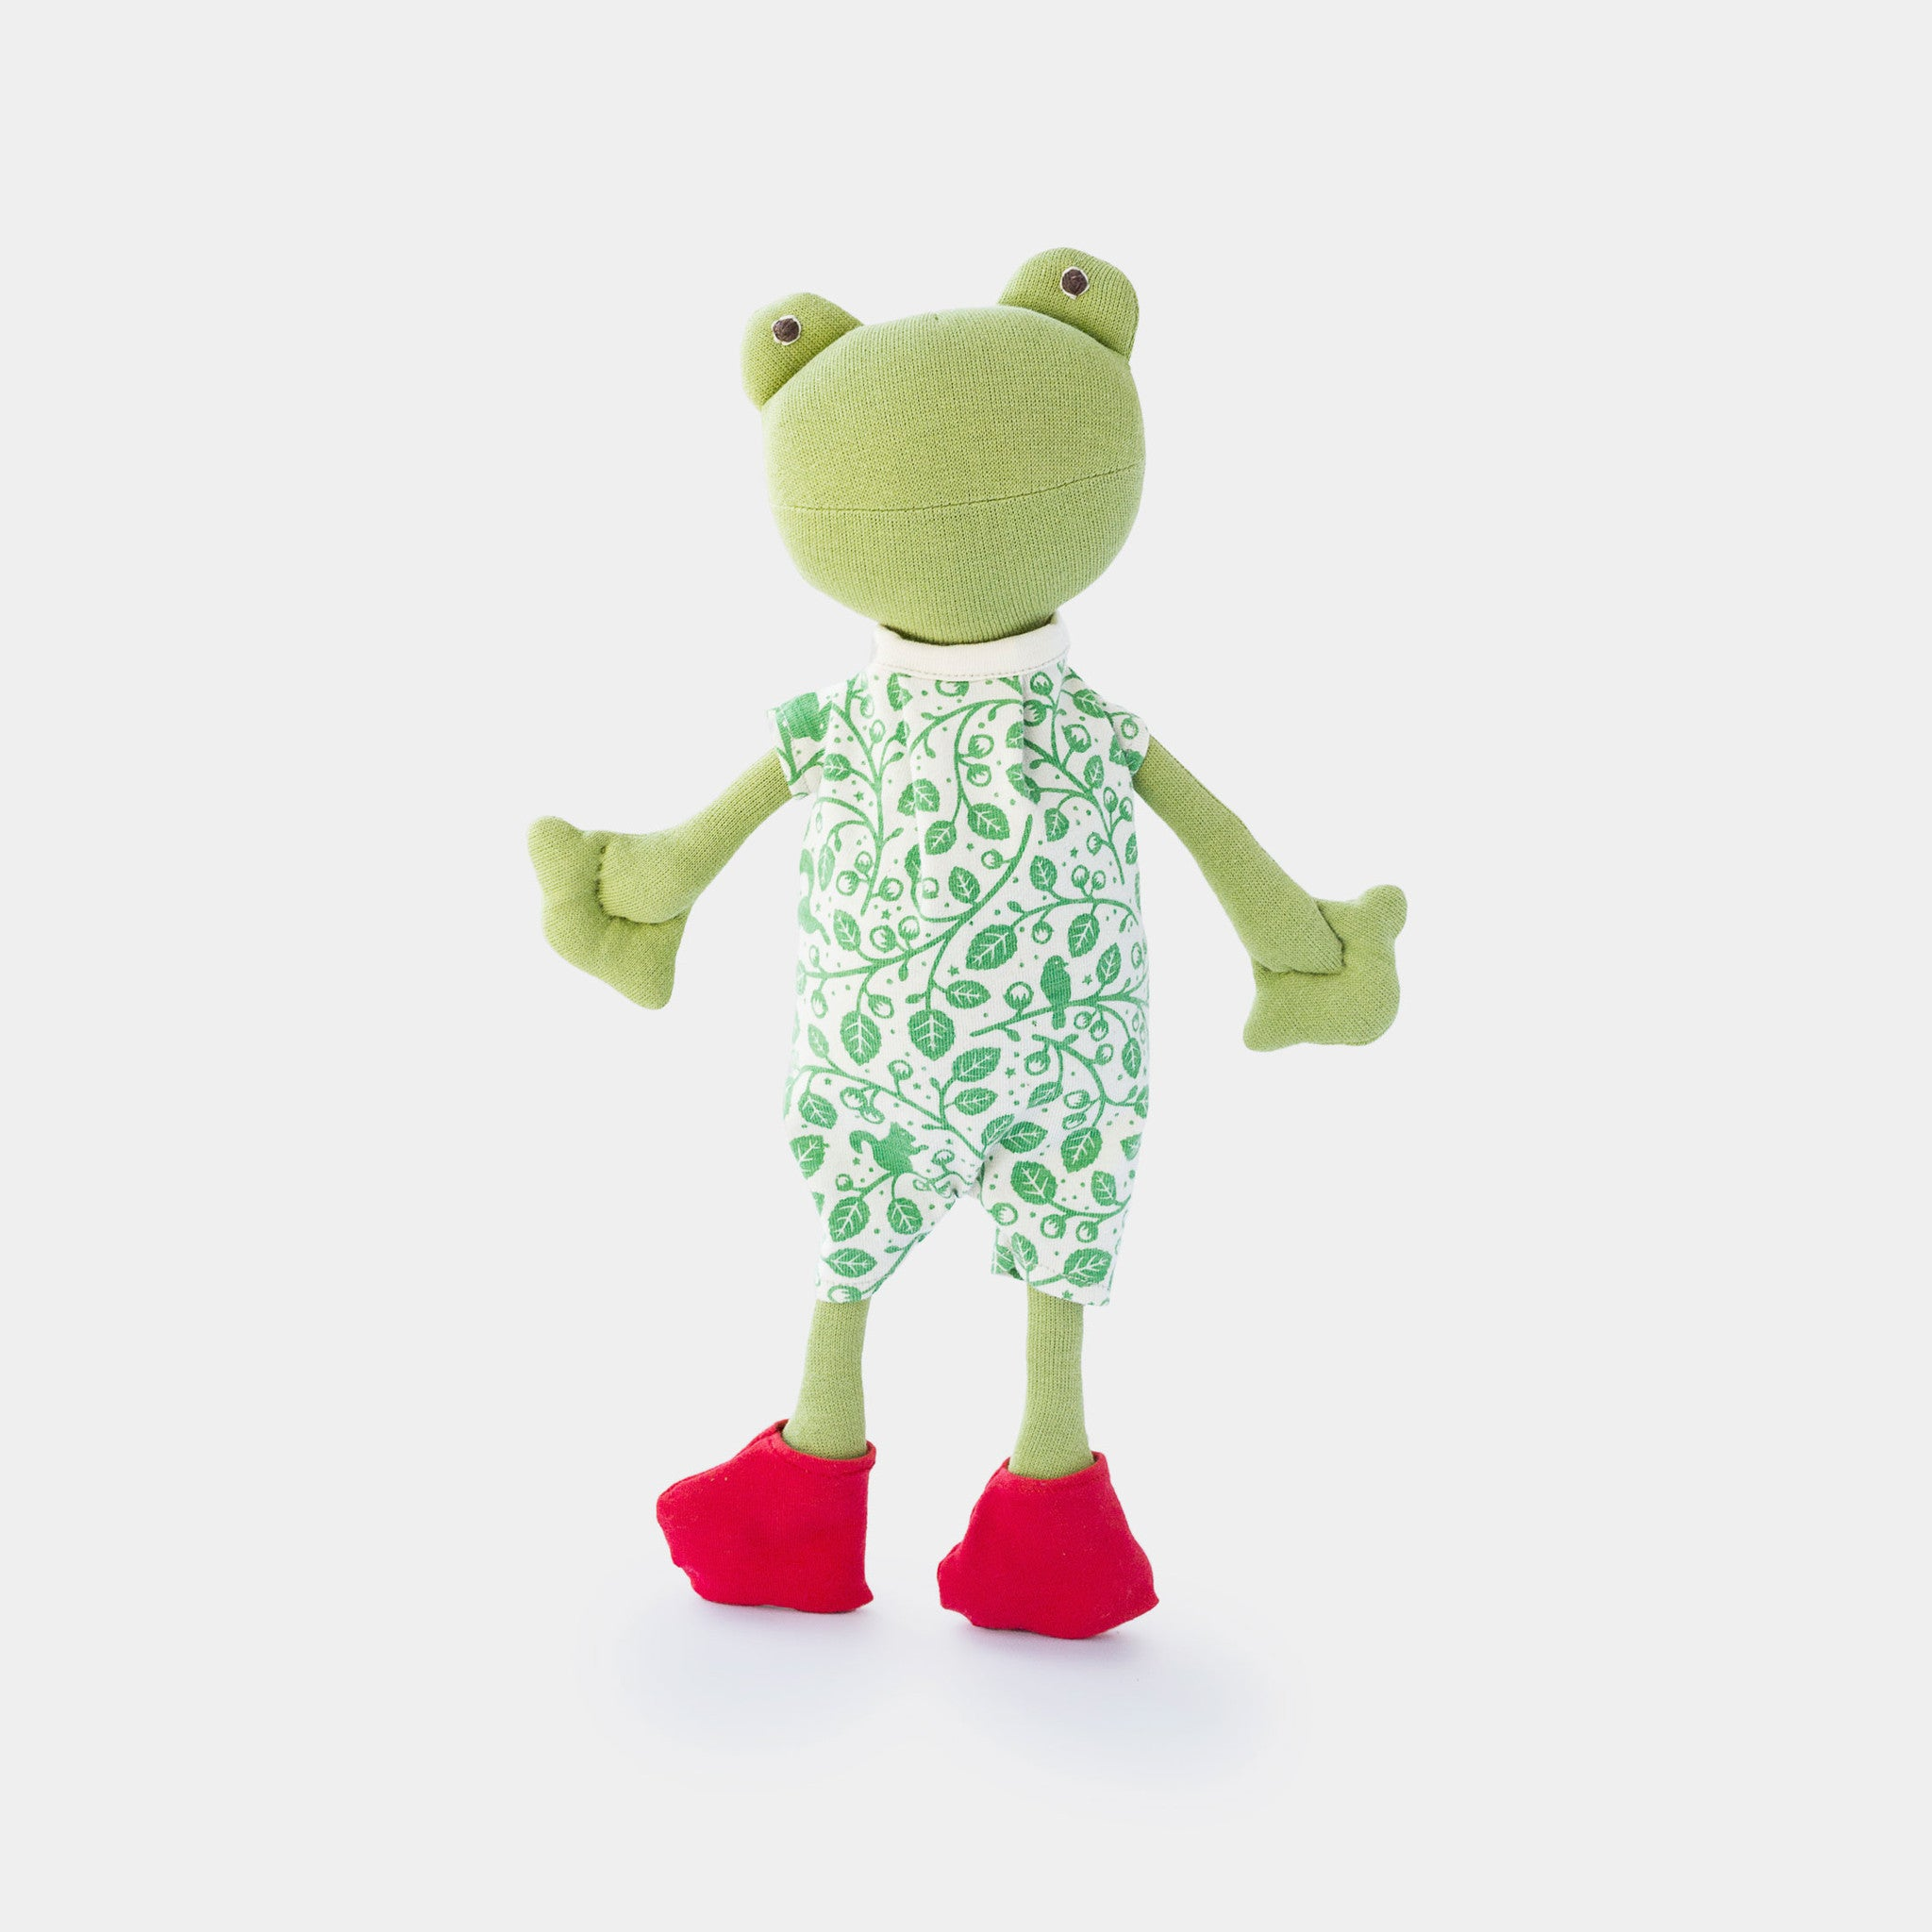 The green soft toy, Ella Toad - a sustainable organic cotton cuddly toy toad by Hazel Village